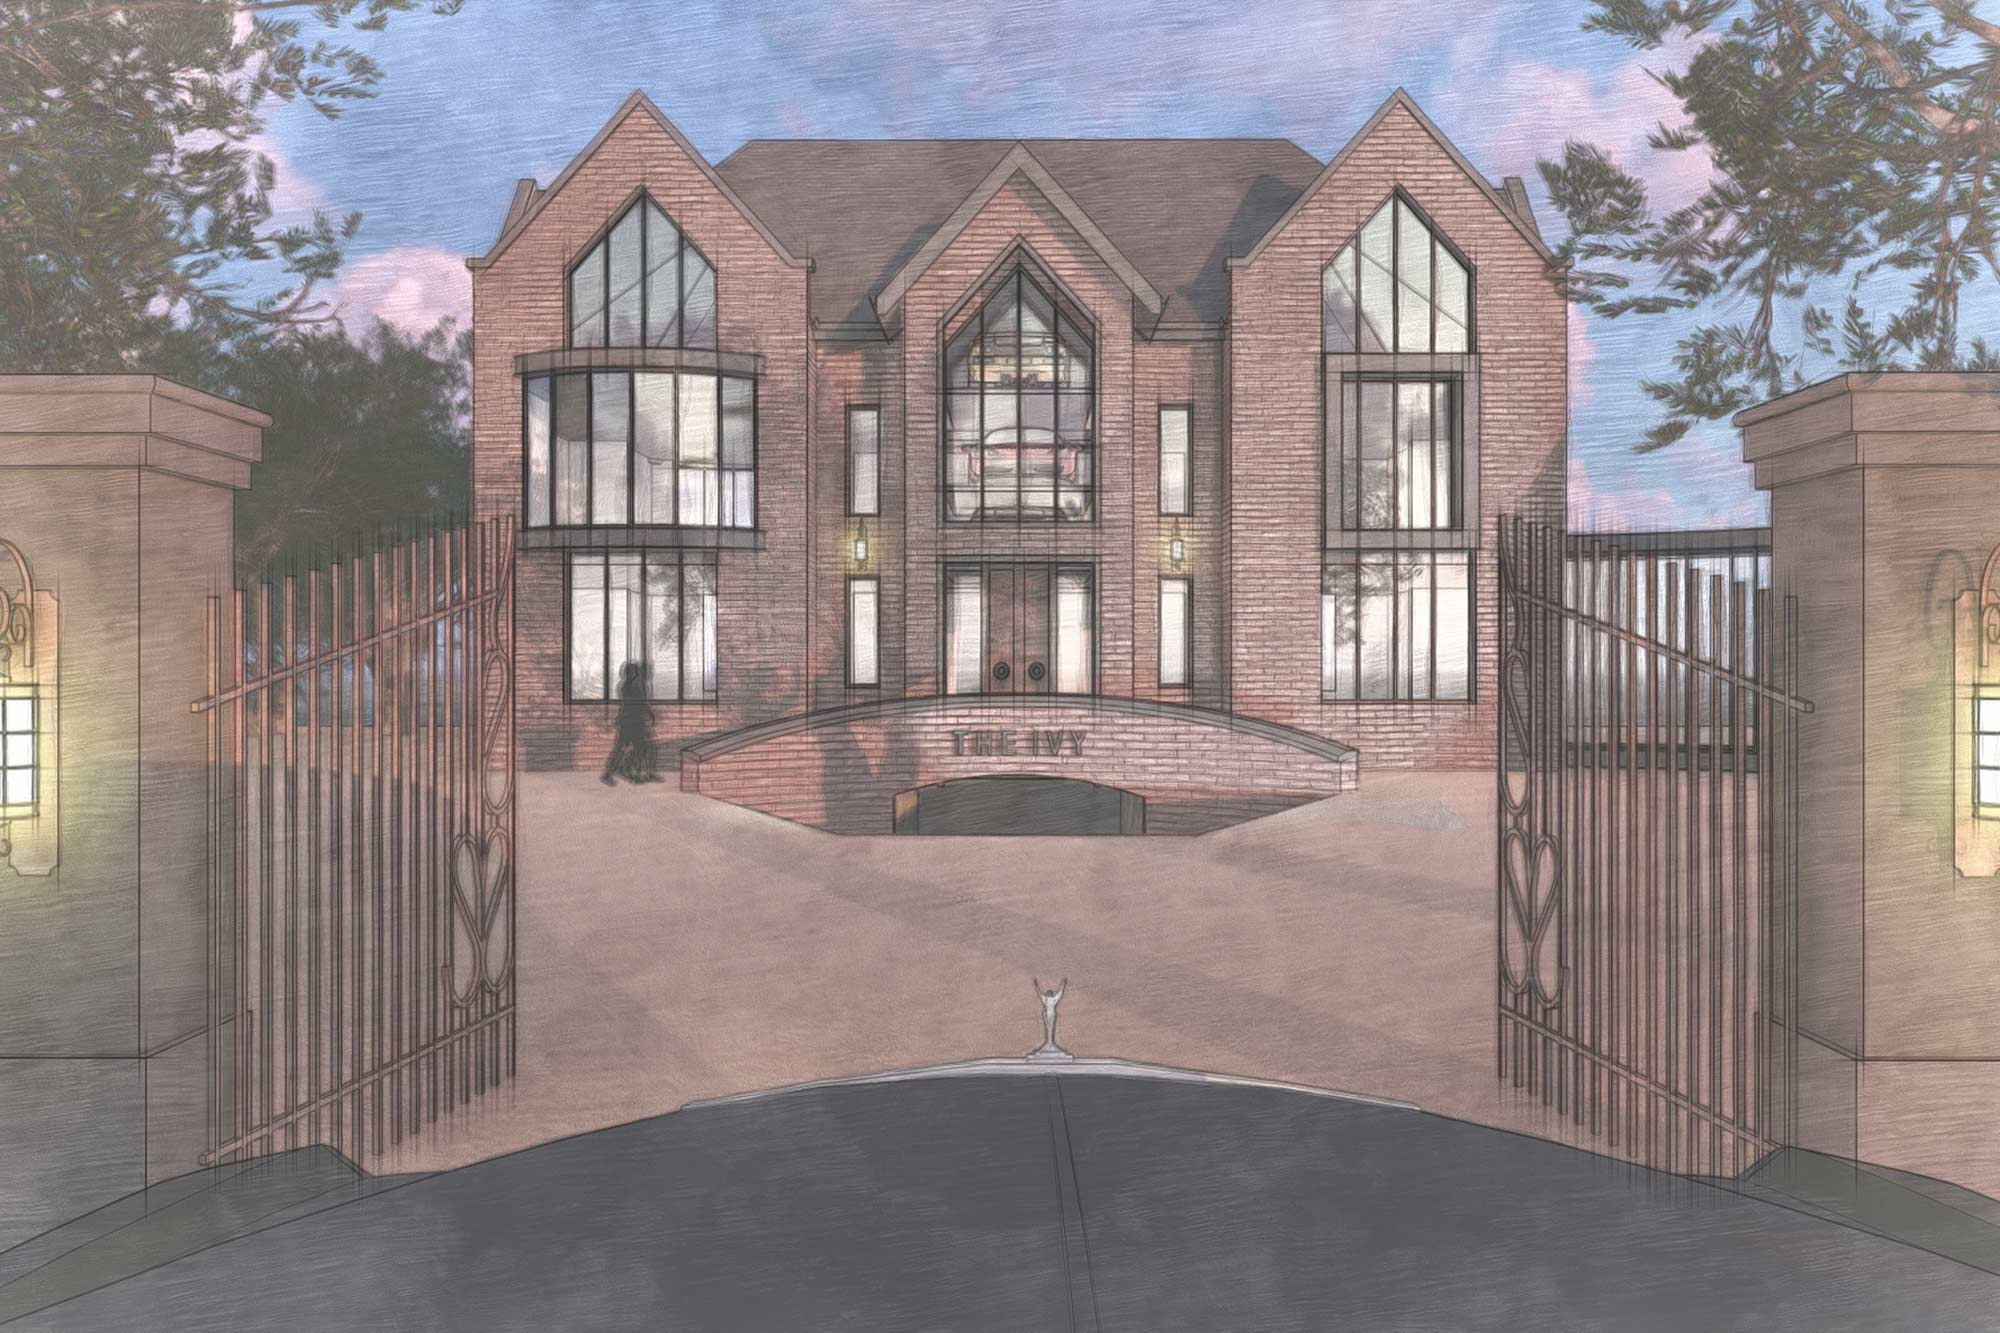 Art Deco themed contemporary countryside manor house architectural design in Lytham St Annes, Lancashire